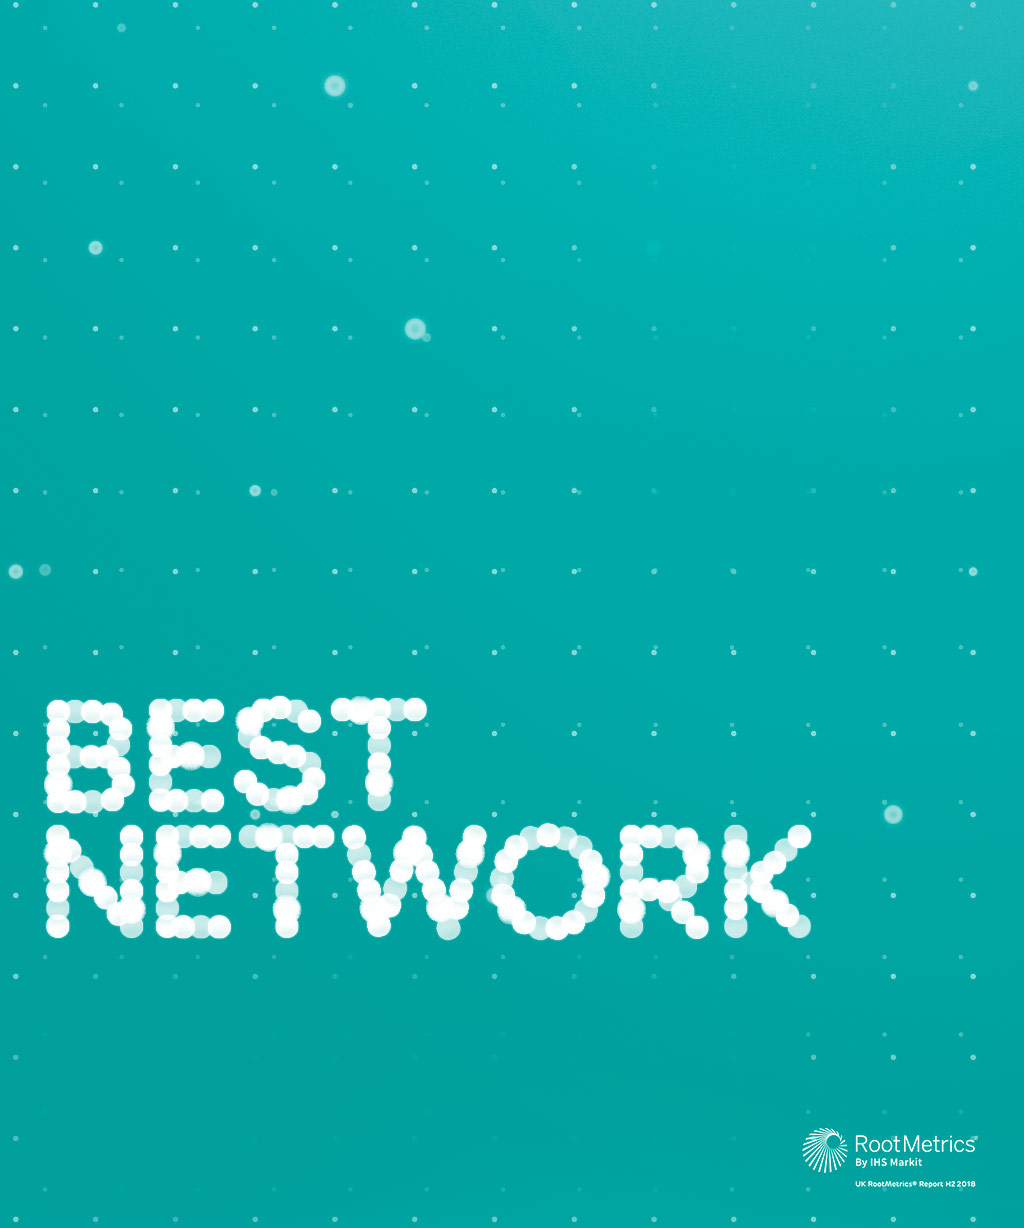 UK's best network five years running on a particle background